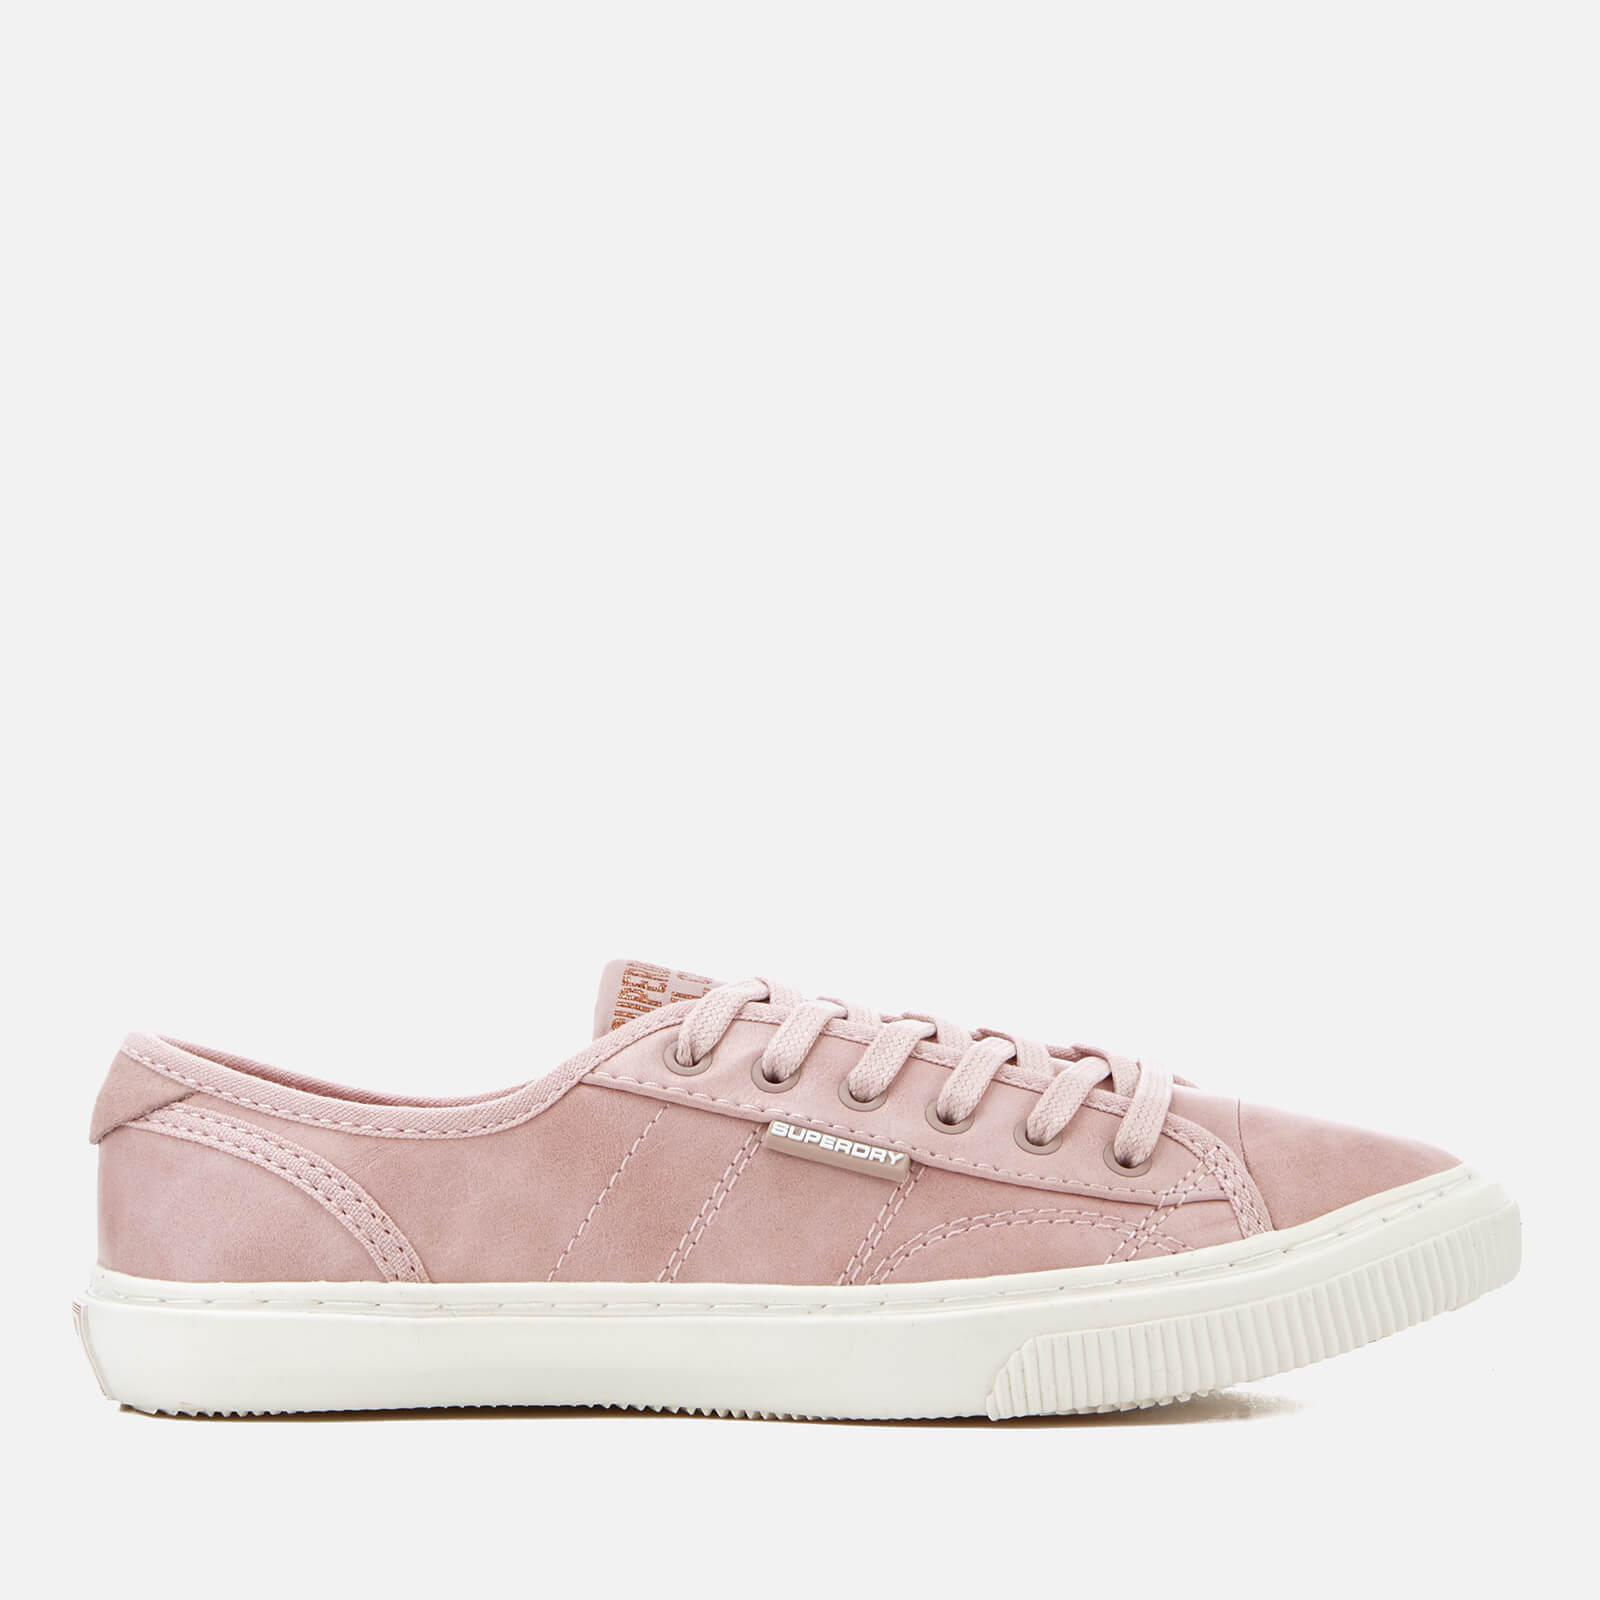 Superdry Low Pro Luxe Trainers in Pink